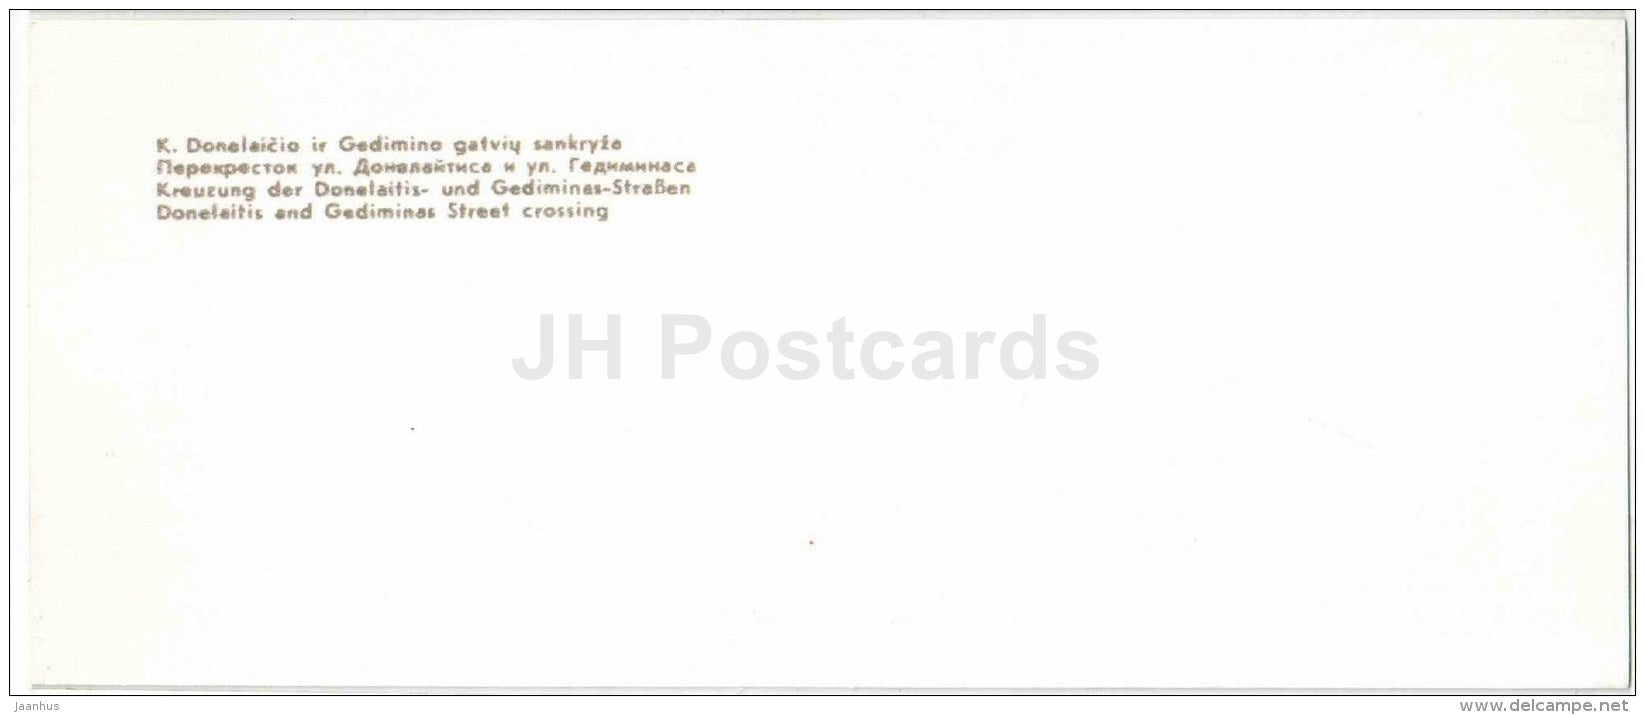 Donelaitis and Gediminas street crossing  - Kaunas - mini postcard - 1971 - Lithuania USSR - unused - JH Postcards